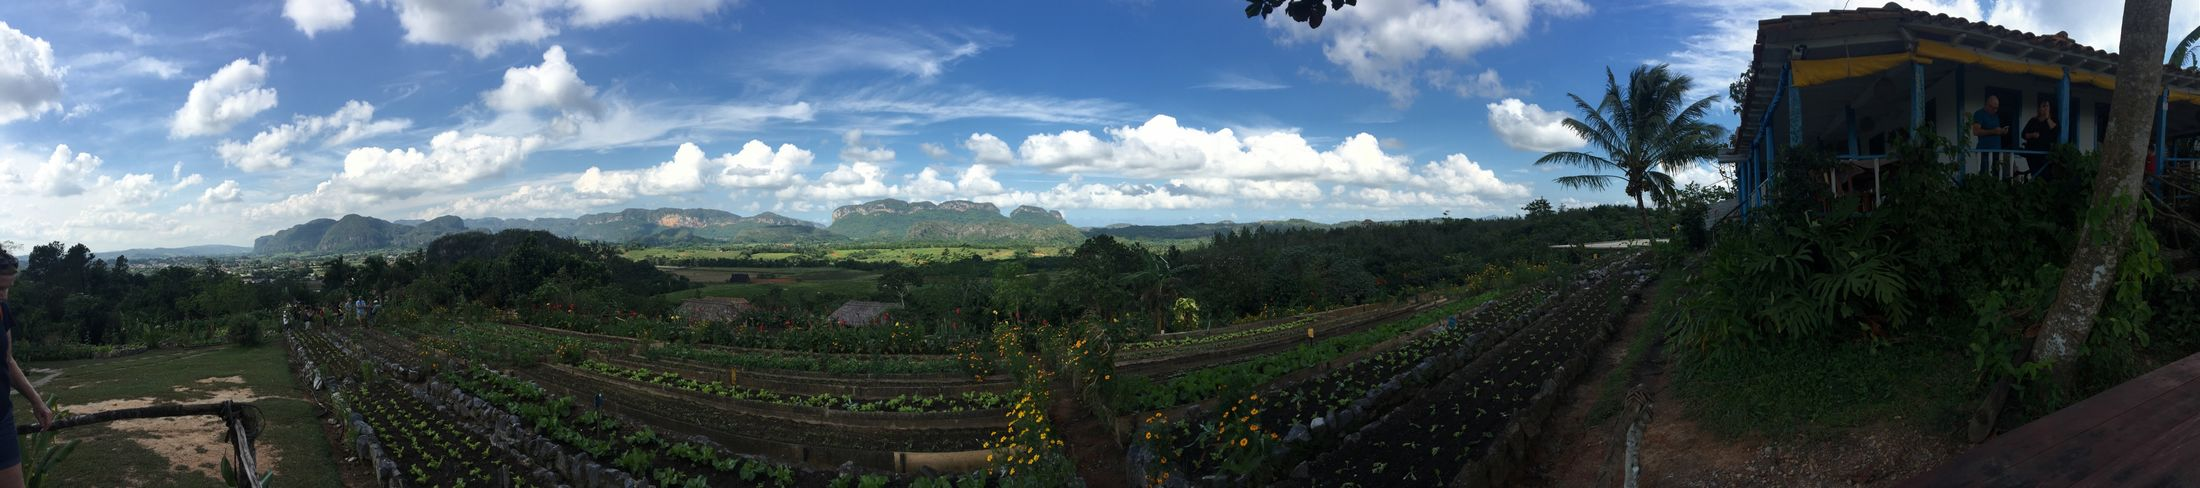 Cuba Sky Architecture Mountain Cloud - Sky Nature Landscape Agriculture Panoramic Tree Tranquility